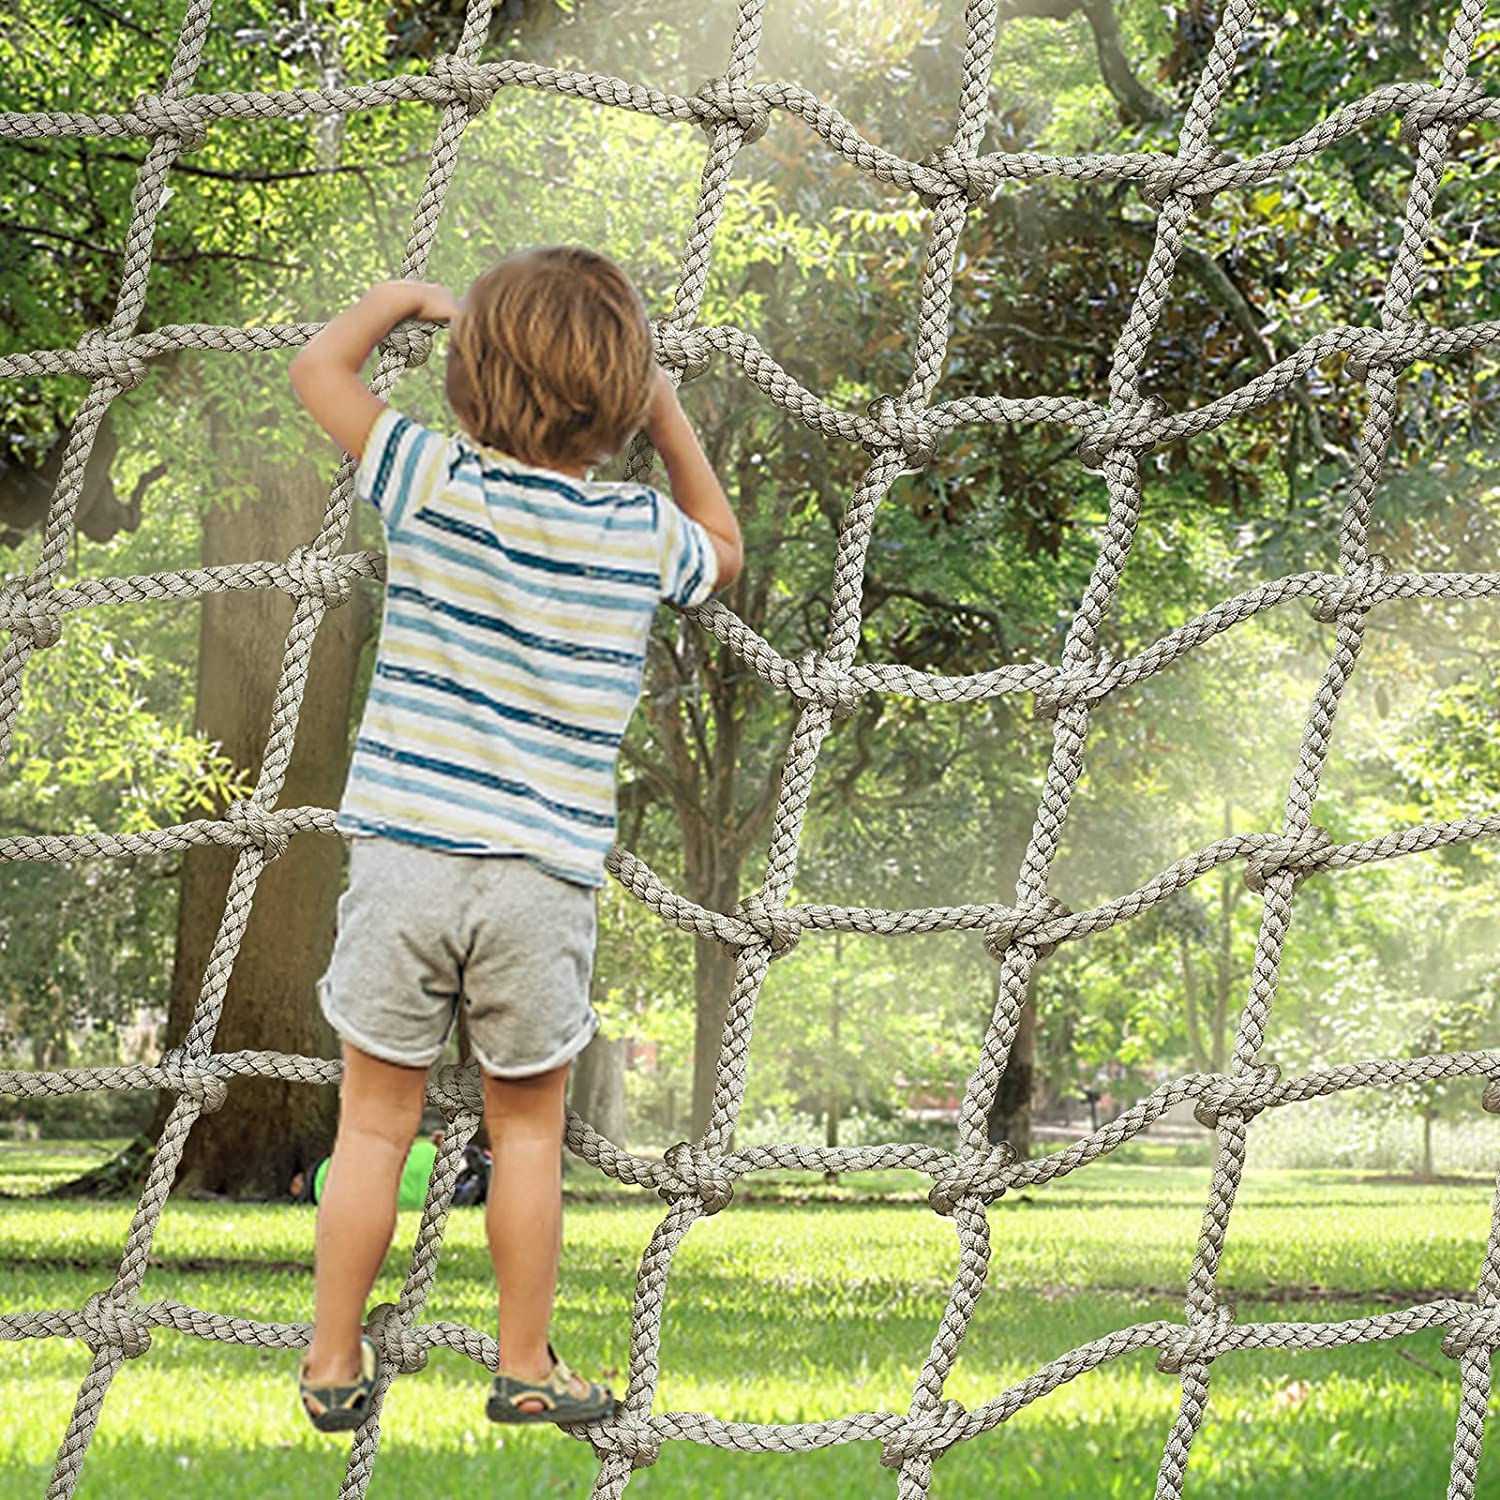 SEAAN Playground Net Climbing Net, 3.3'X9.9' Safety Nets Cargo Rope Heavy Duty Netting Treehouse Protection, Rope Ladder Swing Nylon Rope Balcony Banister Protection Fence Decor Mesh for Sports Bar